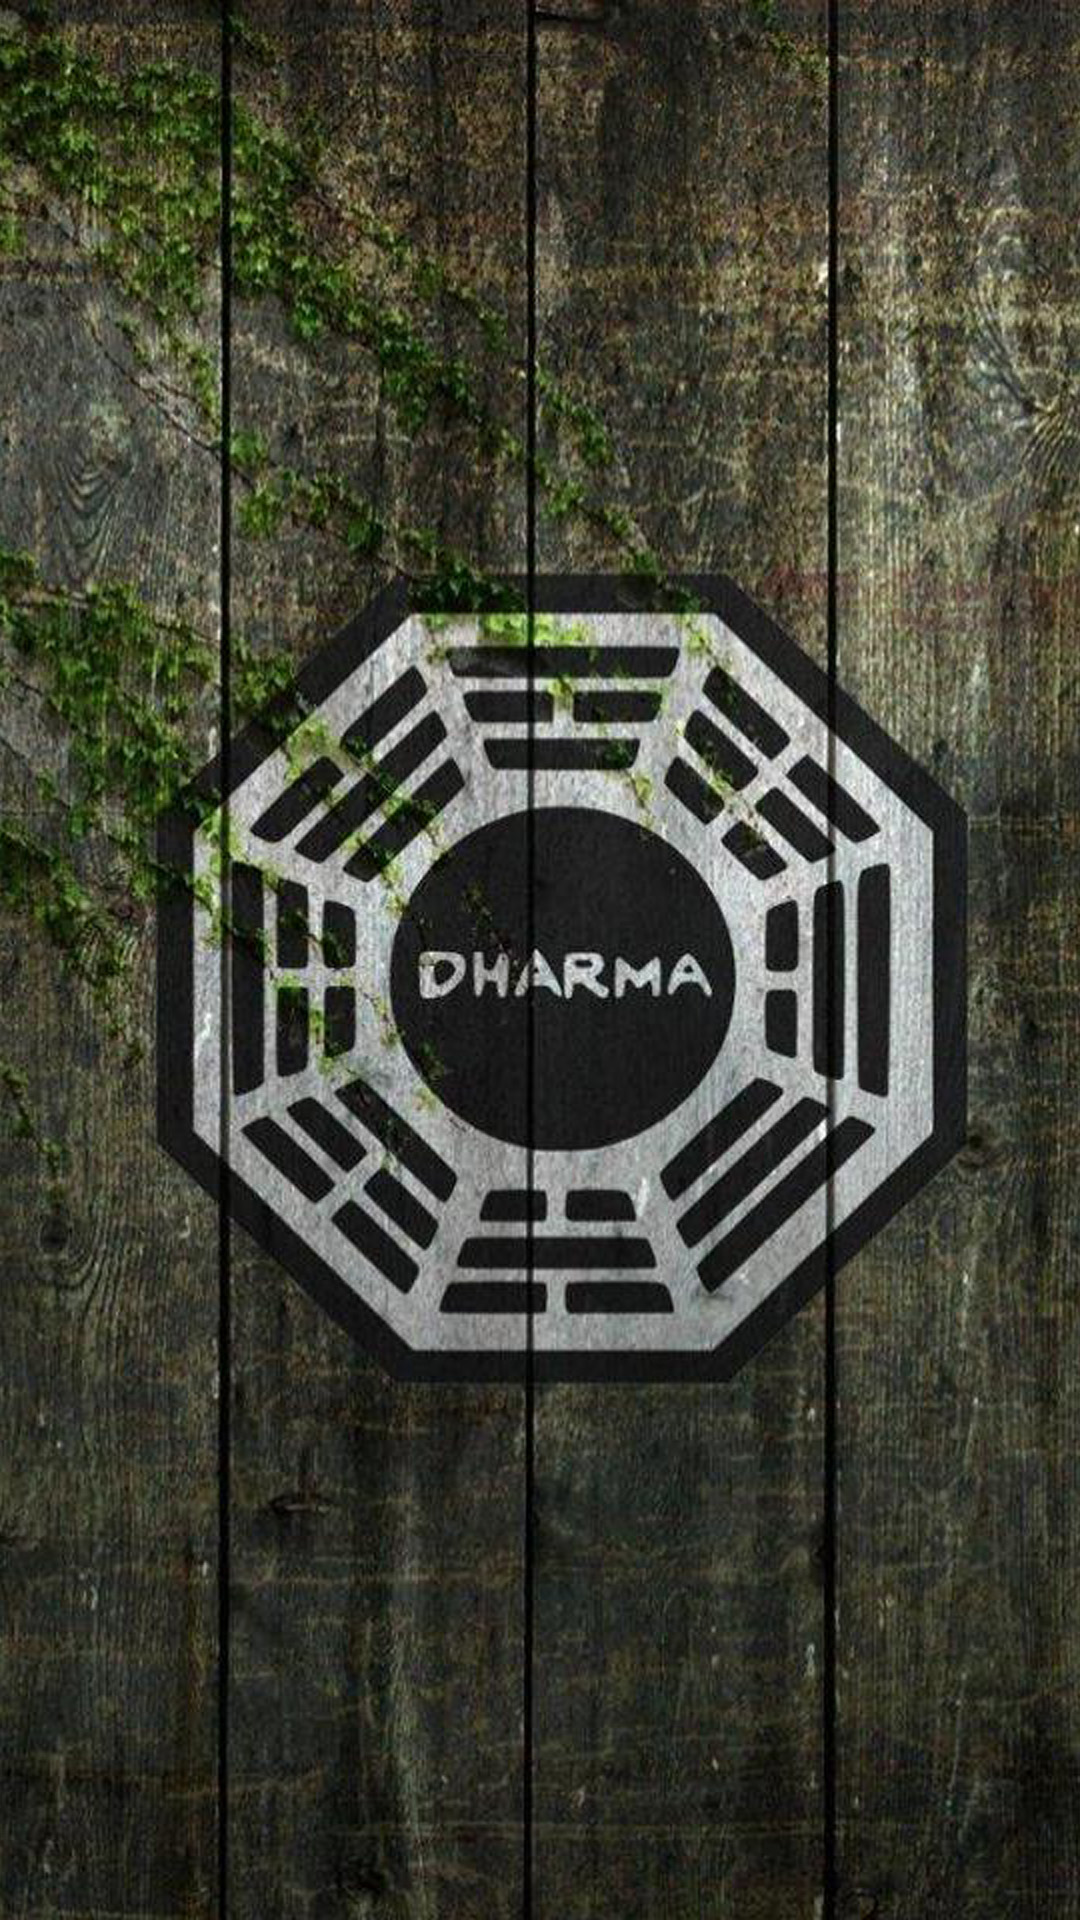 Dharma Initiative Best Htc One Wallpapers Free And Easy To Download